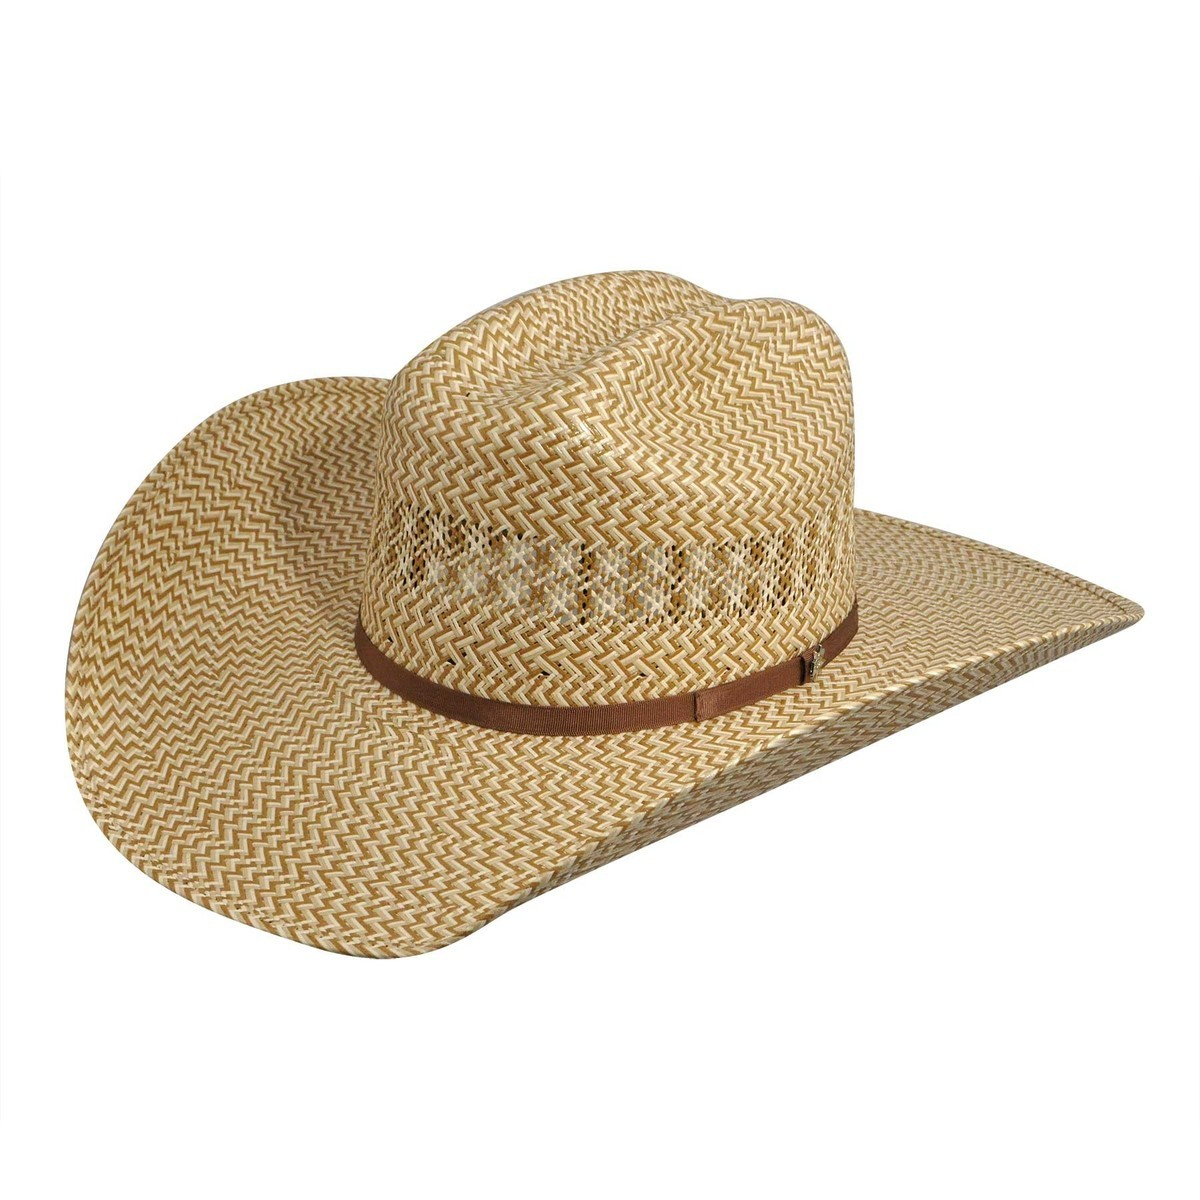 Bailey Western Ryland 15X Western Hat NATURAL SAND Western 帽子 NATURAL SAND